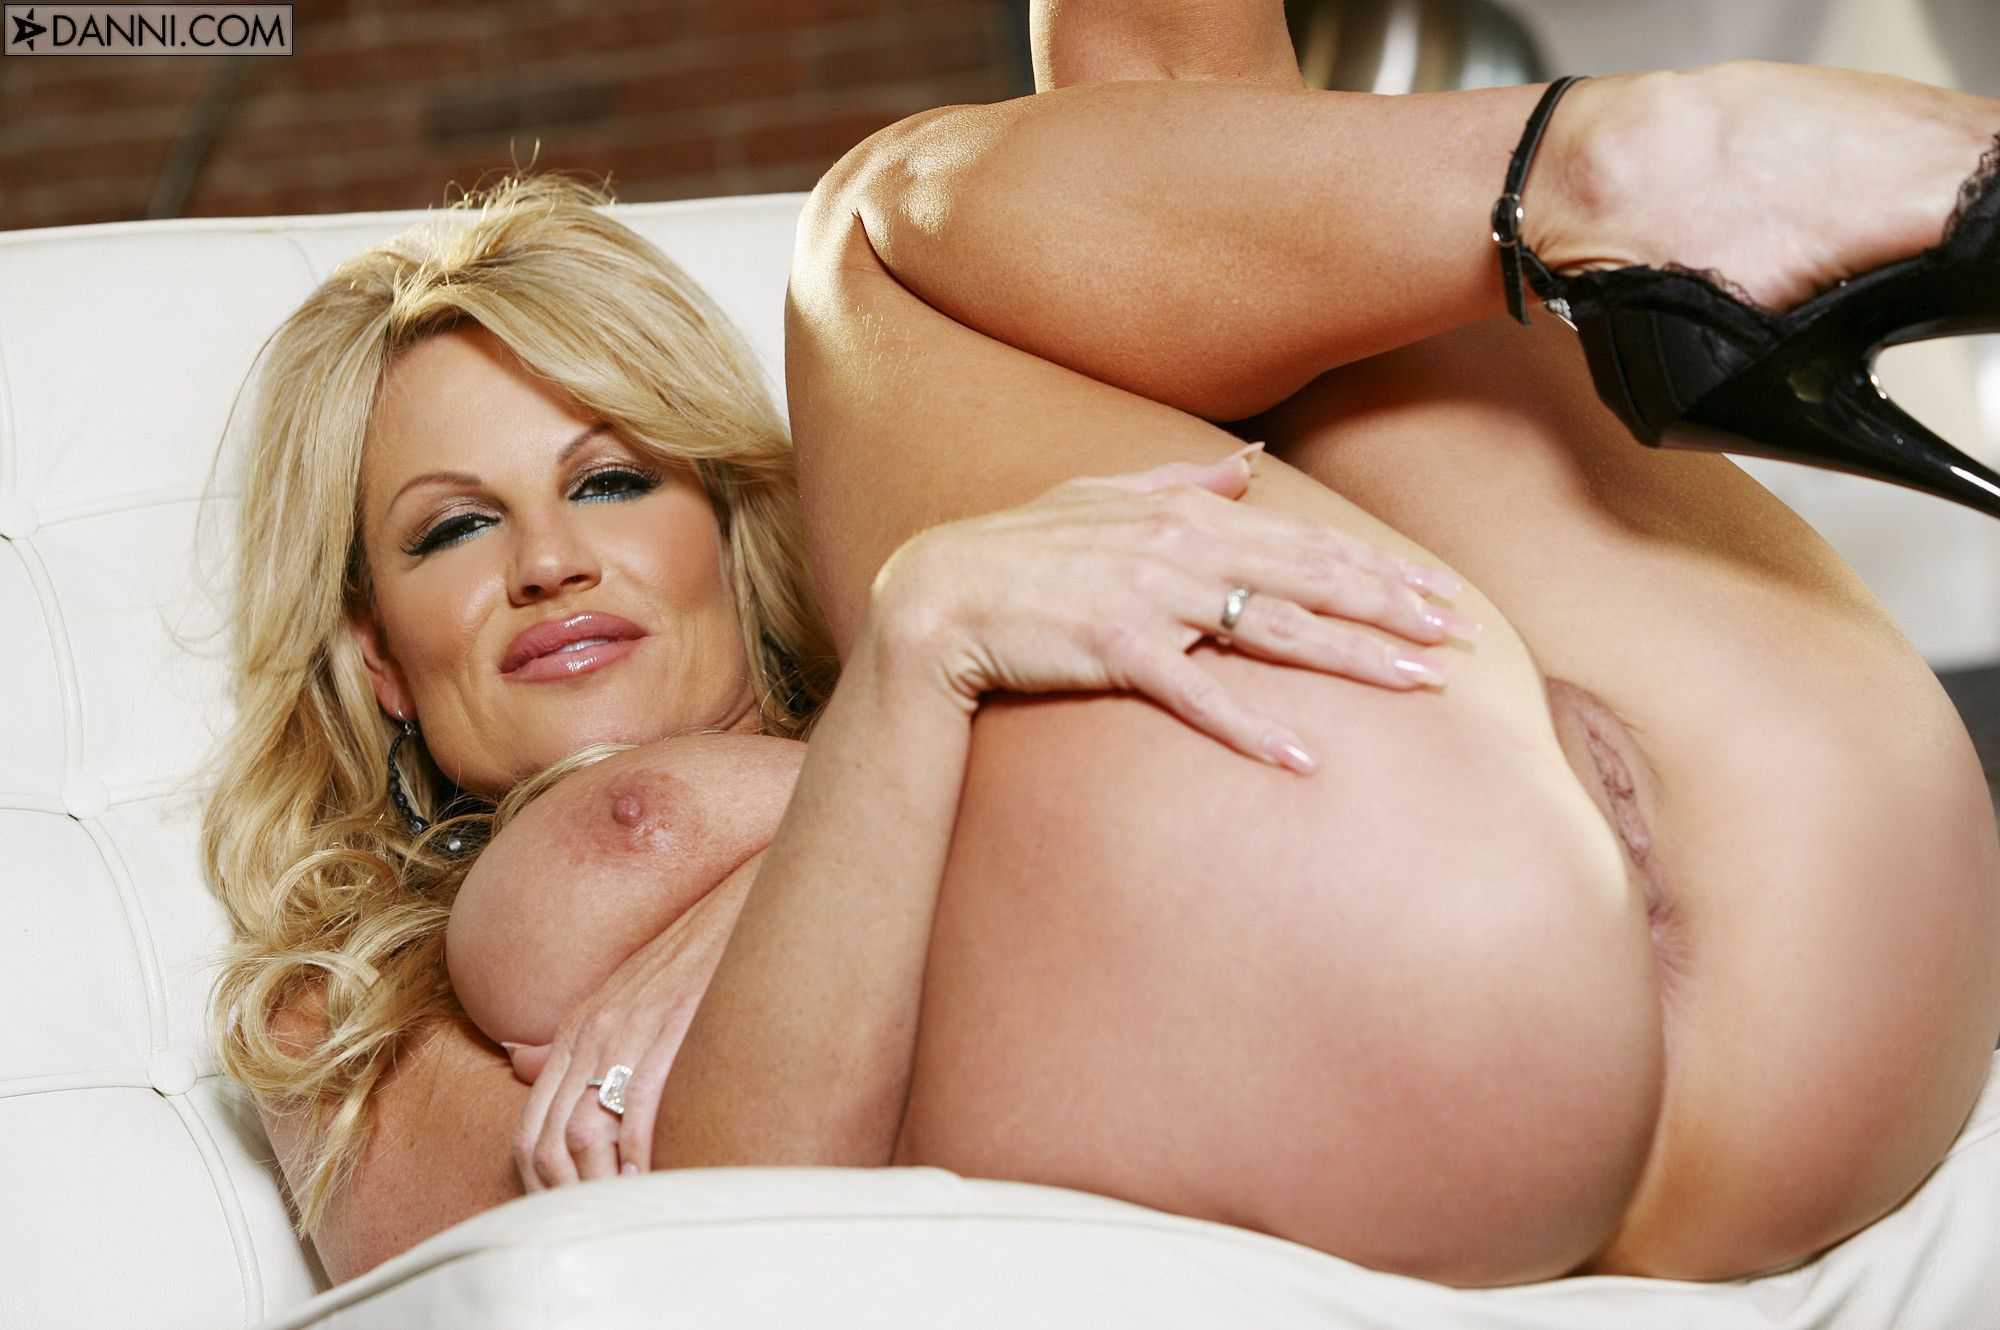 Kelly madison pussy